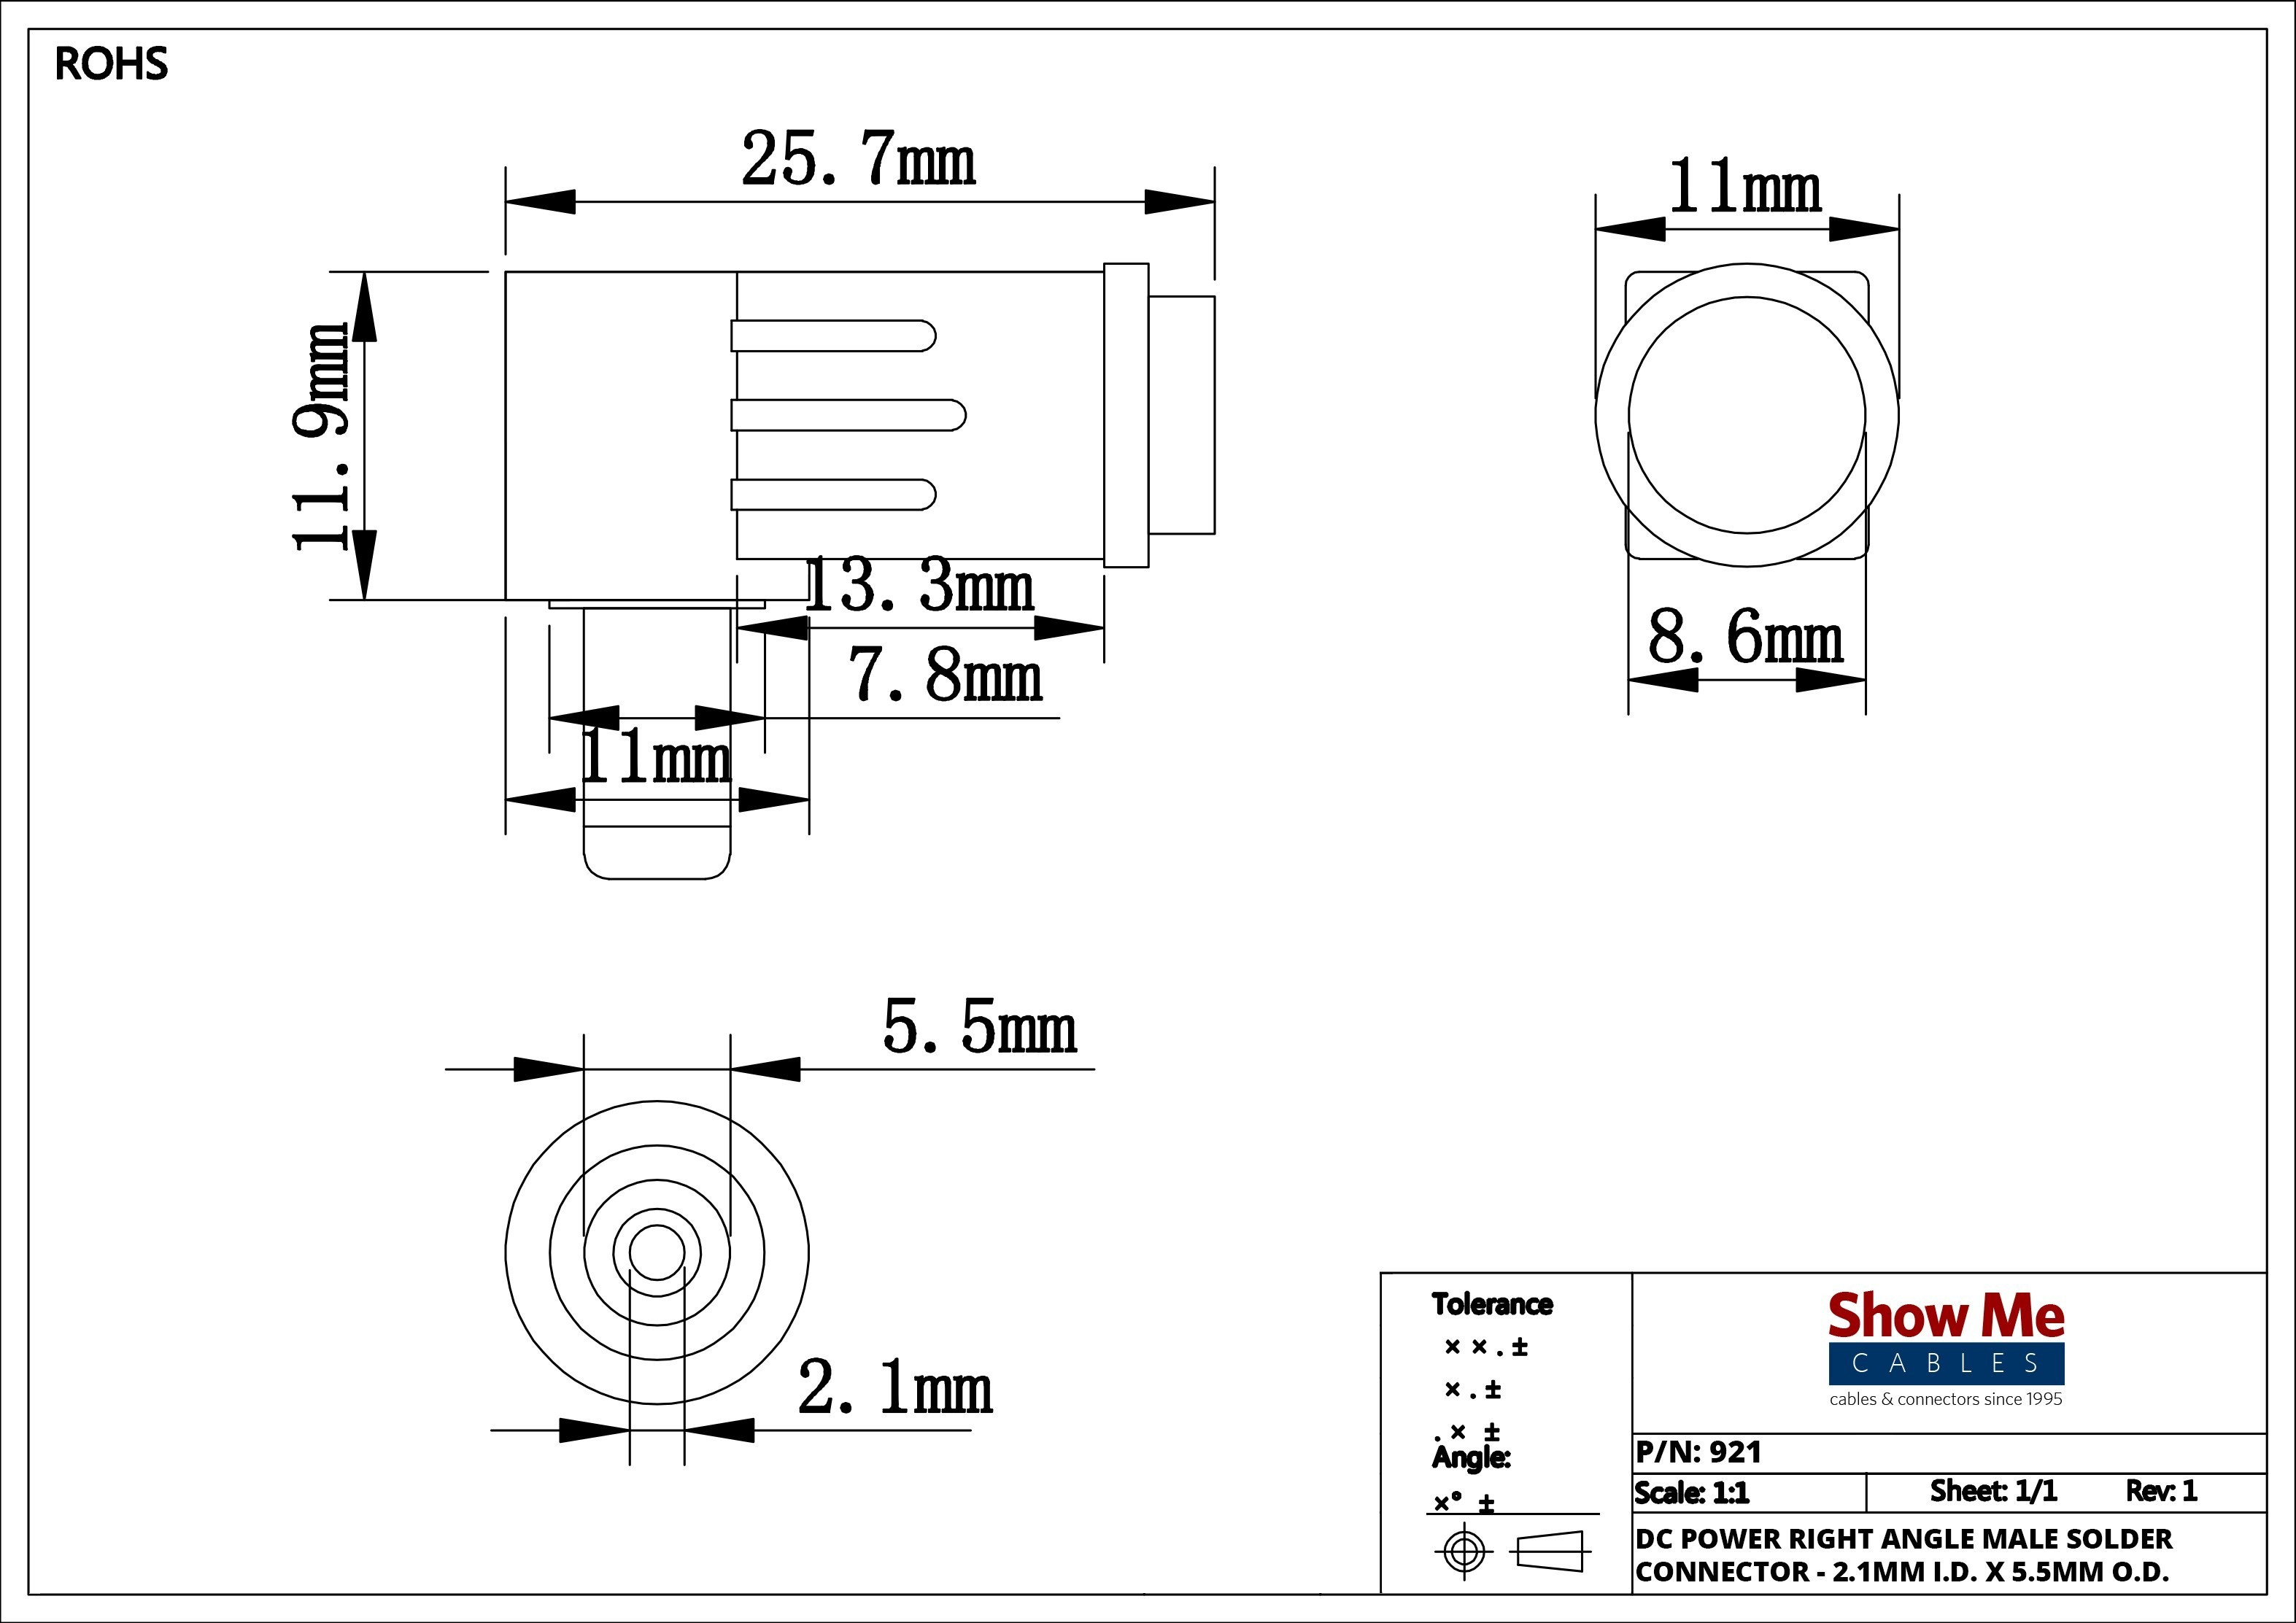 House Wiring Diagram Template New Electrical Circuit Diagram New 2 5mm Id 5 5mm Od Power